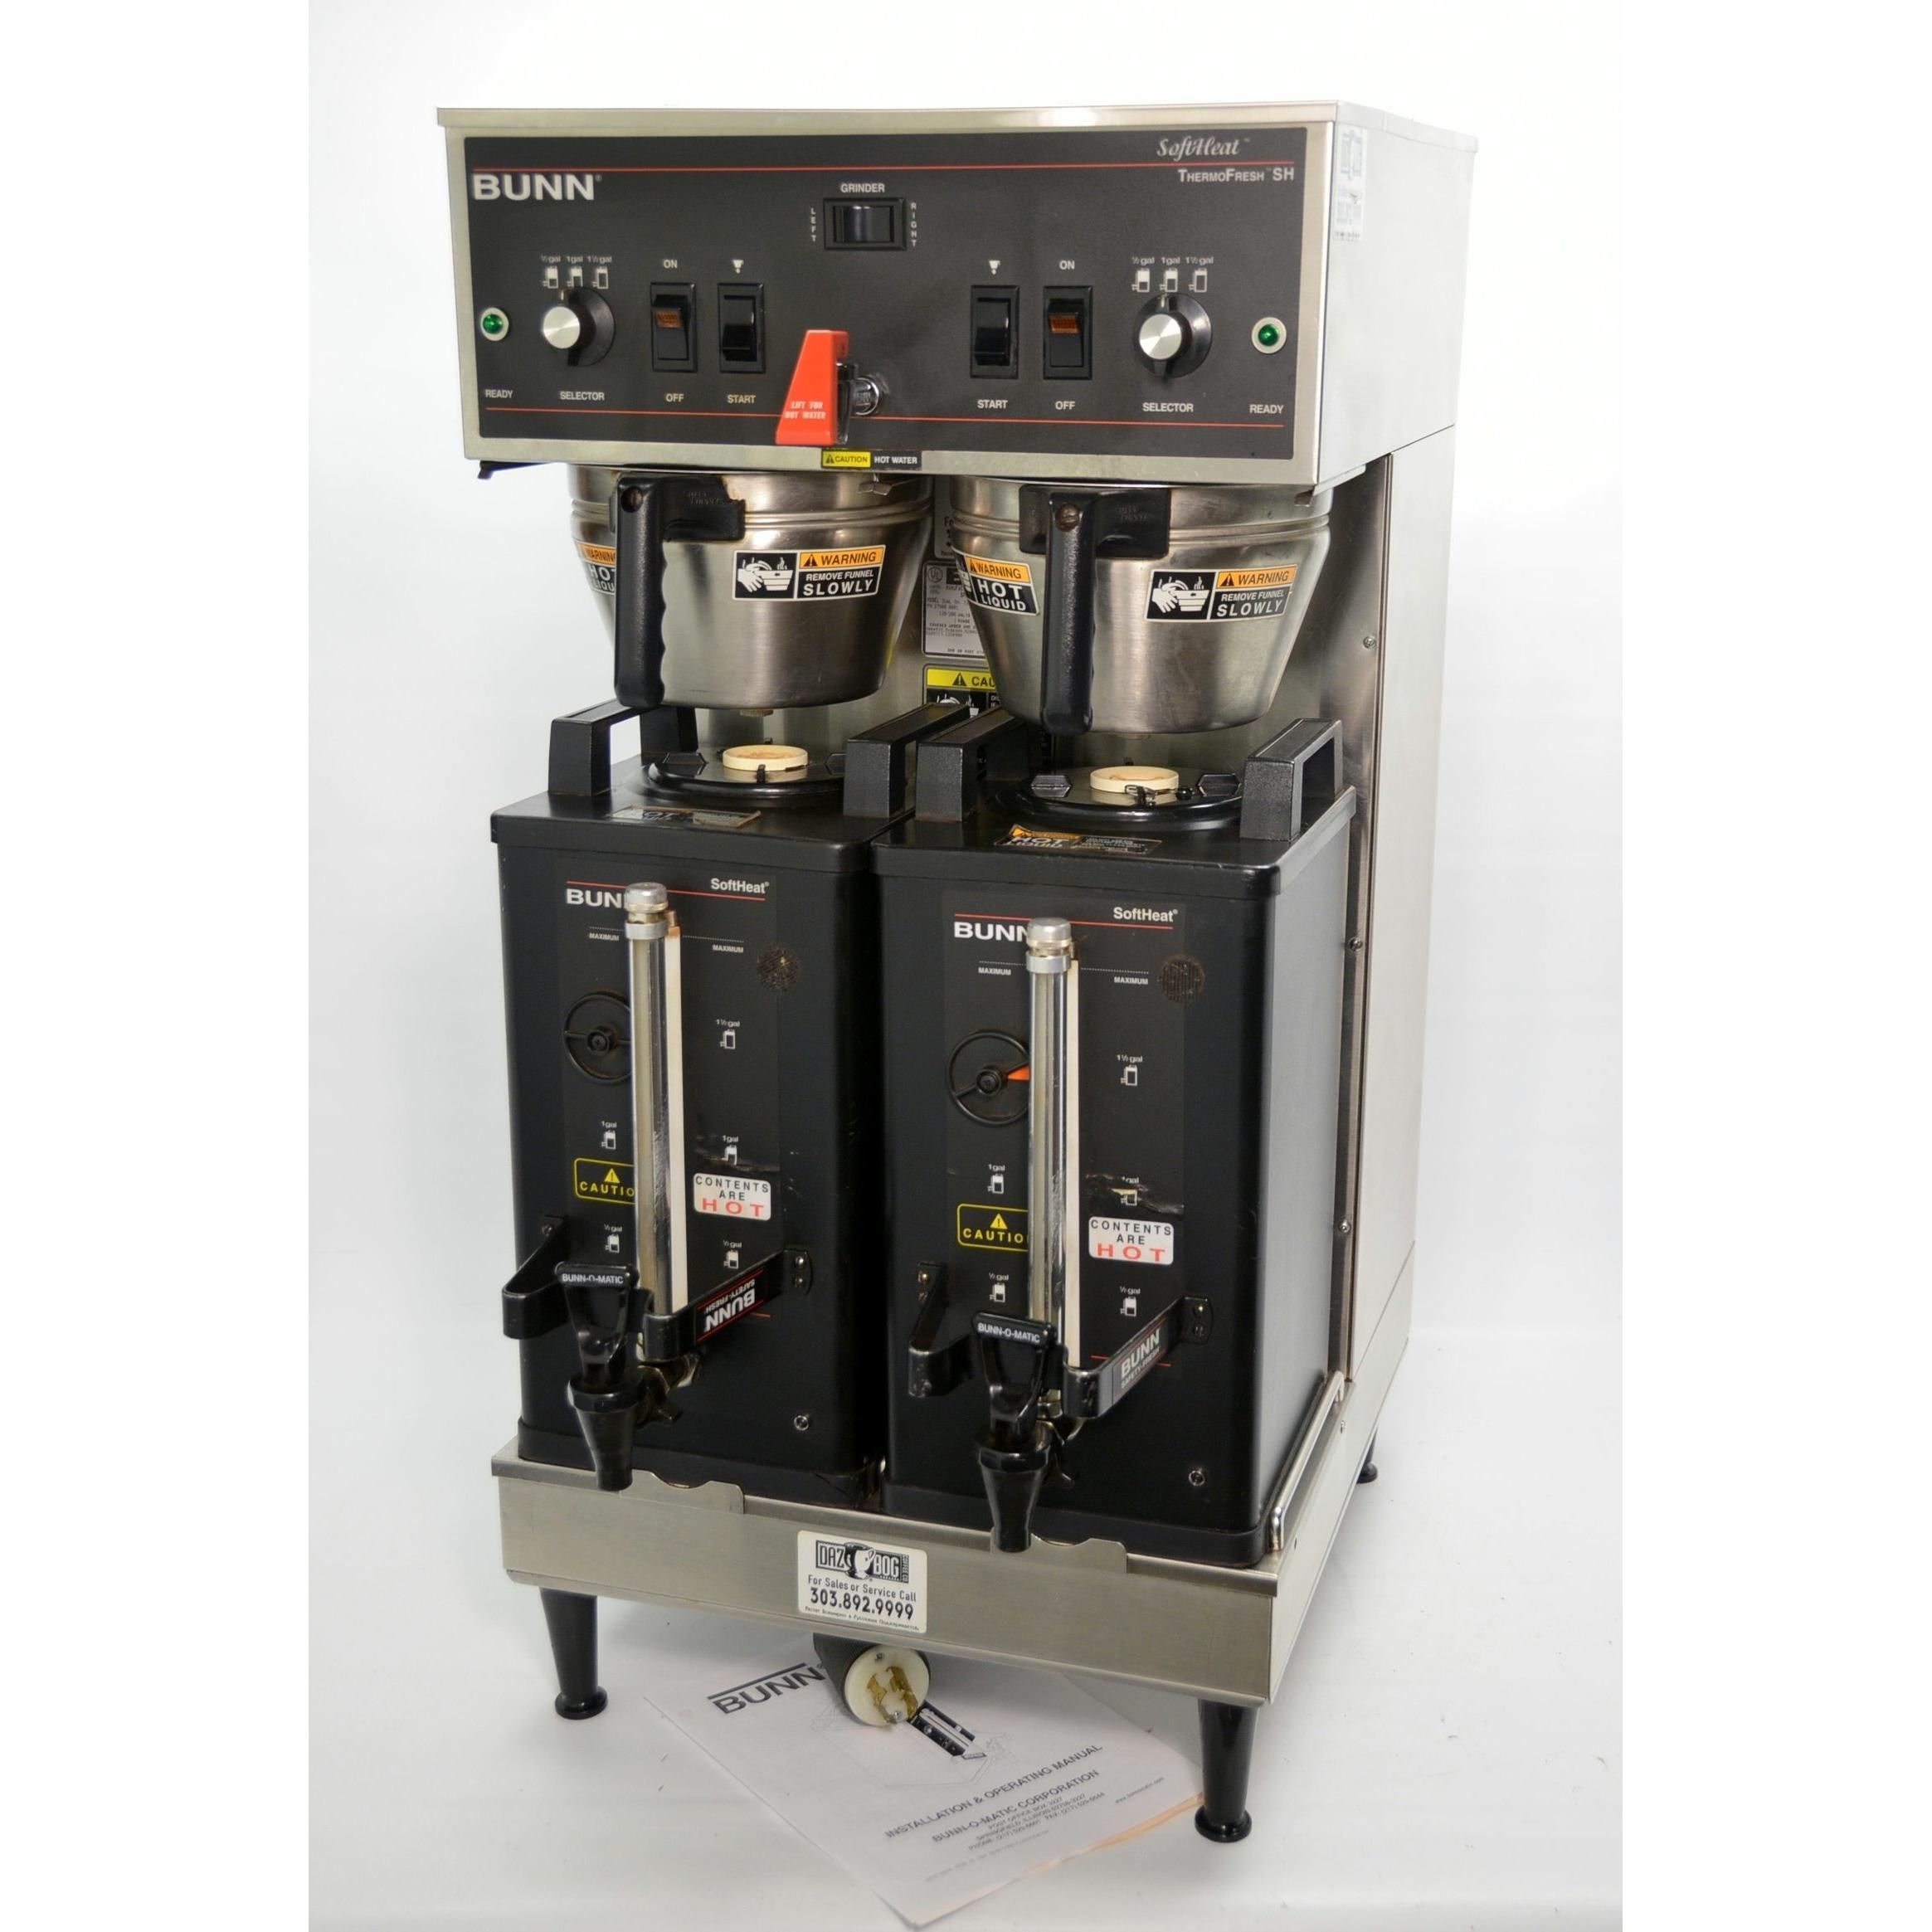 Used Bunn 27900.0001 Coffee Brewer For Satellites High Quality Goods Business & Industrial Restaurant & Food Service